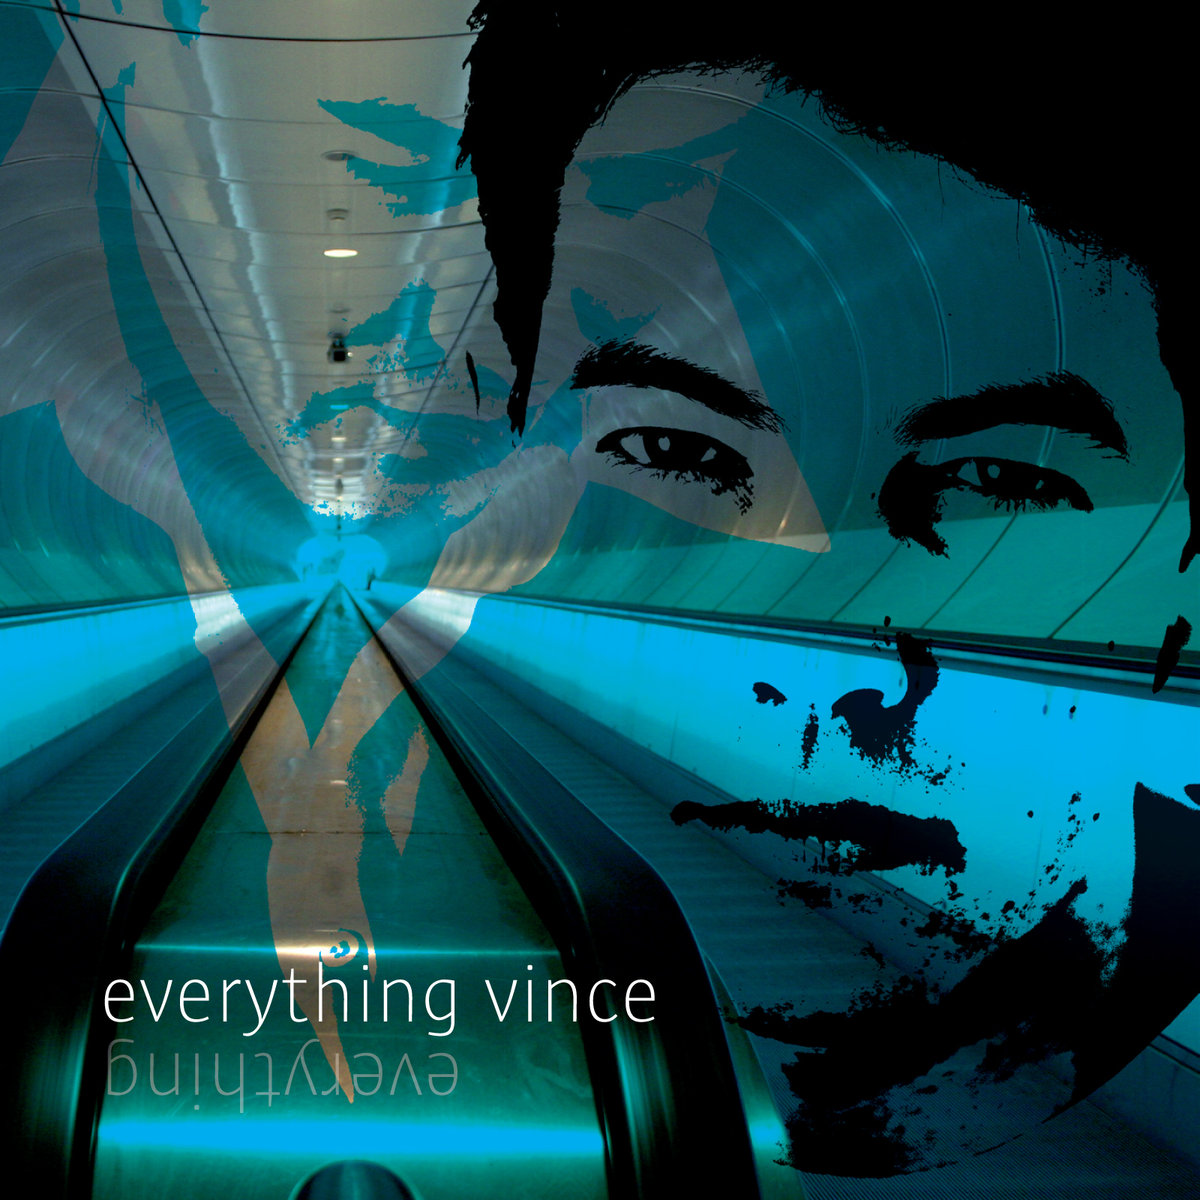 Vince - Universe @ 'Everything' album (pop, pop punk)